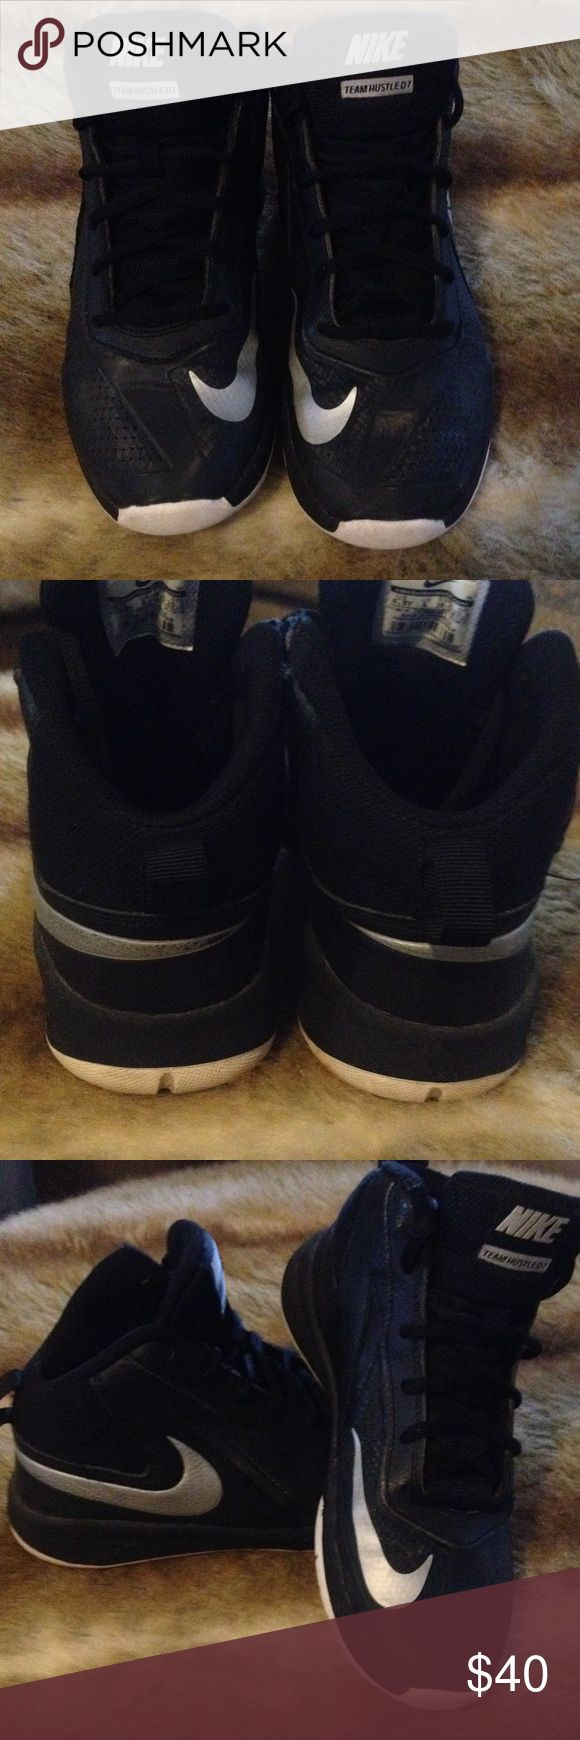 NIKE TEAM HUSTLE D7 BOYS BASKETBALL SHOE 4.5 Y NIKE BOYS BASKETBALL SHIOES SIZE 4.5  YOUTH IN GREAT CONDITION! Nike Shoes Sneakers